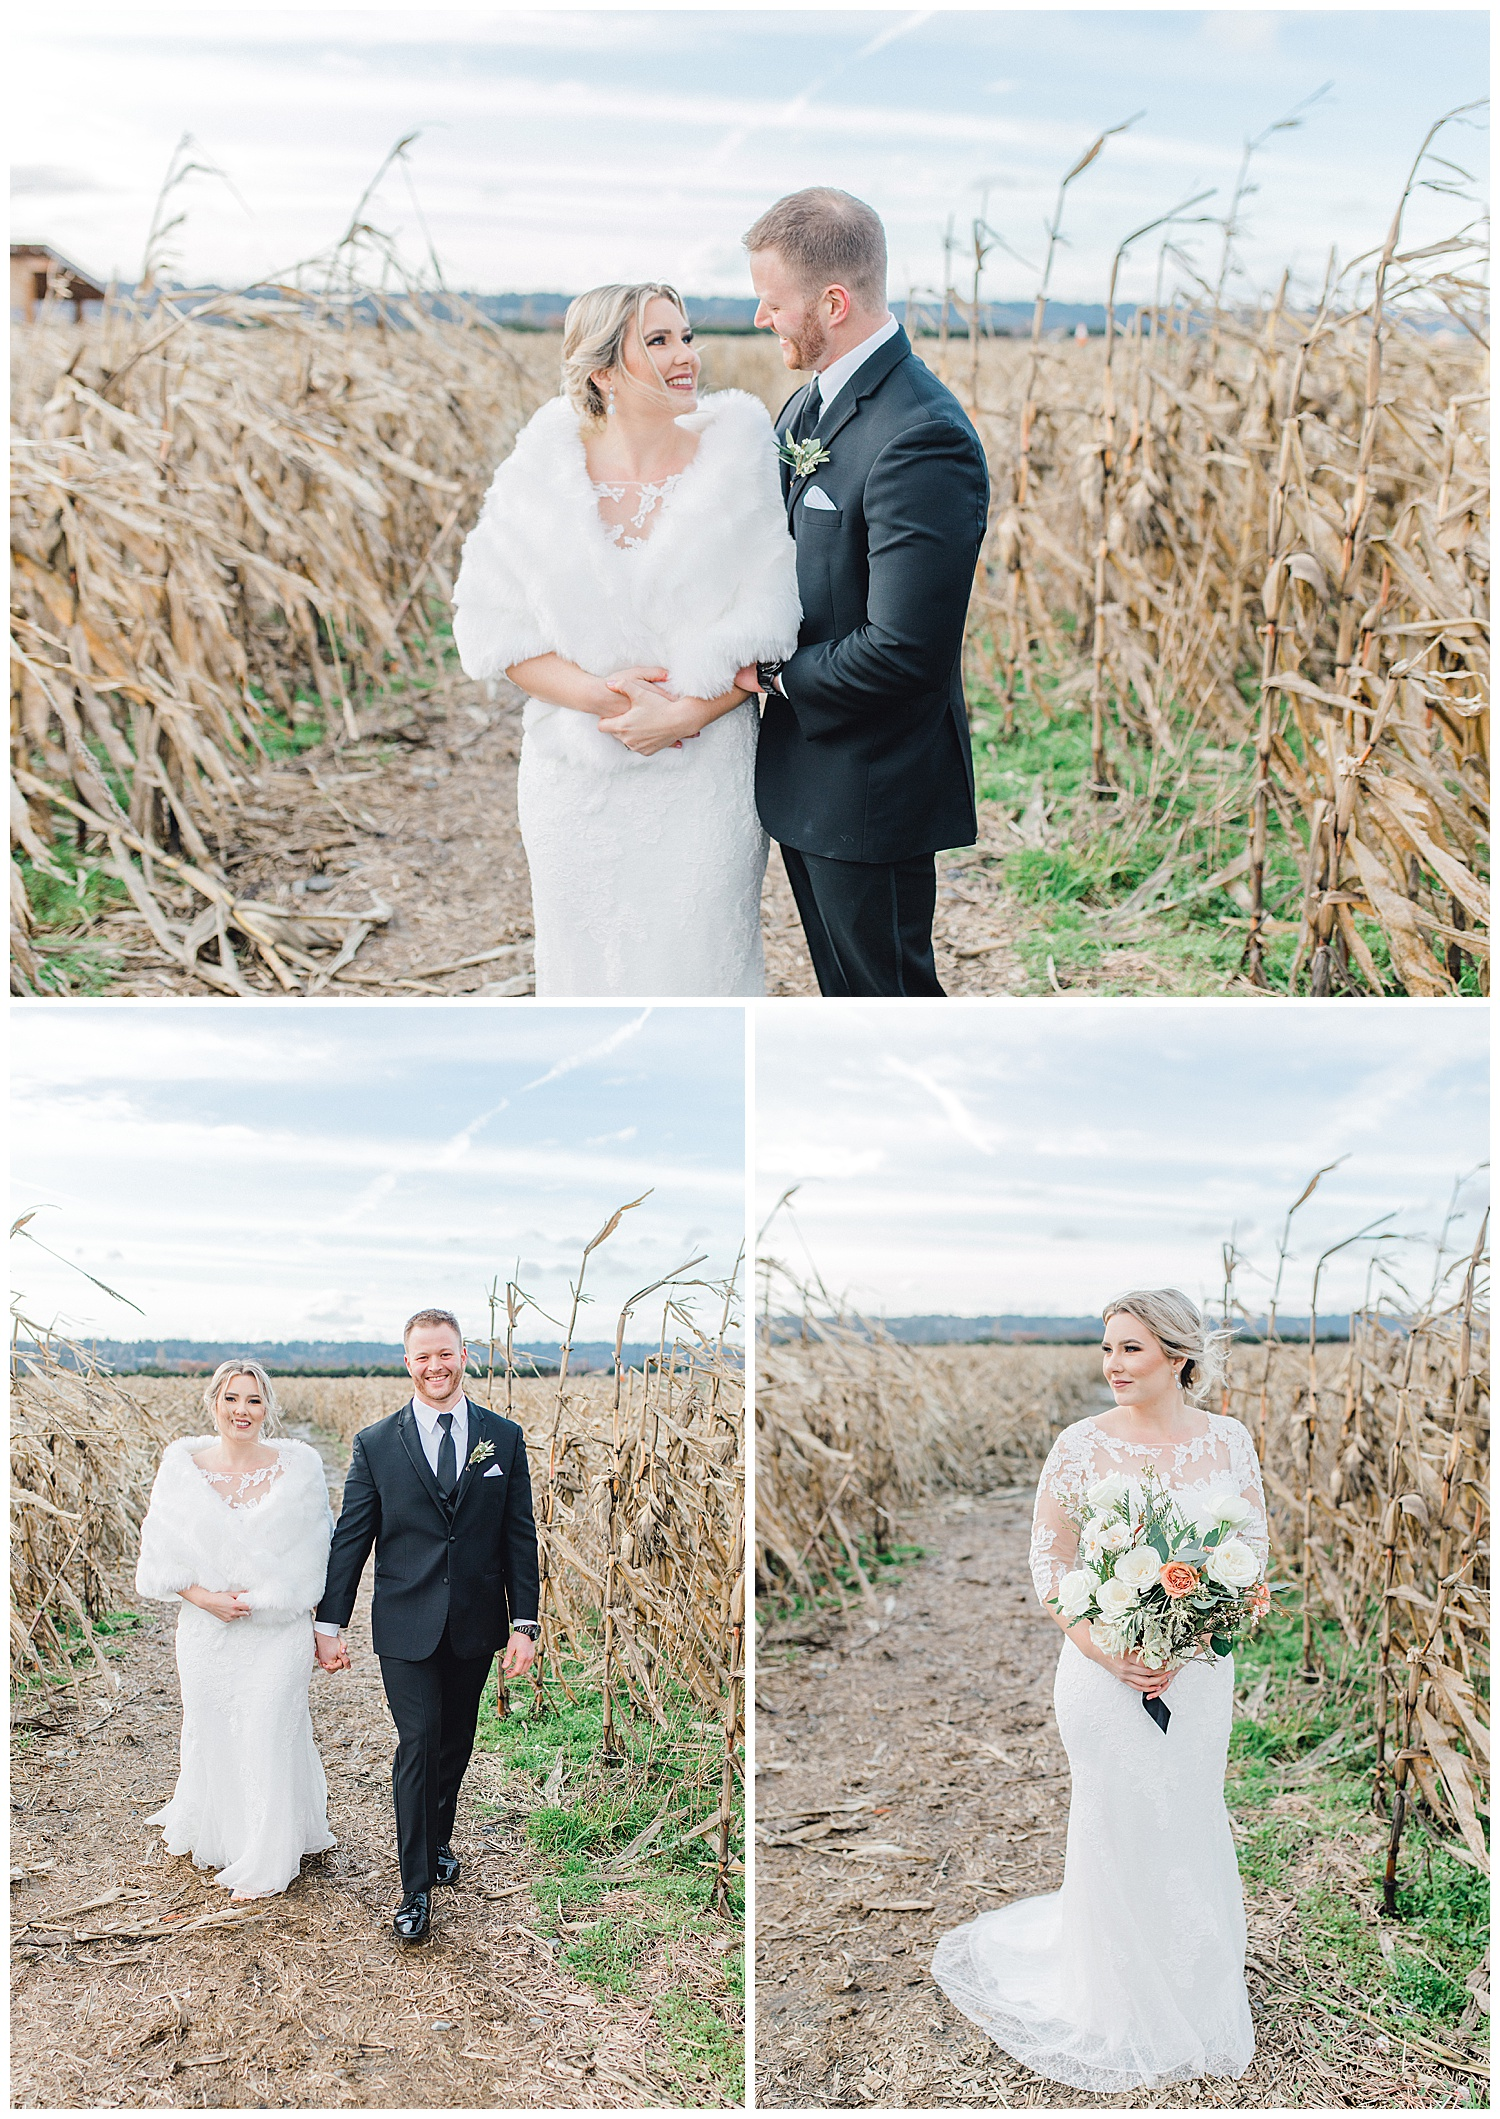 ERC-7431_A beautiful winter wedding in Snohomish, Washington at Thomas Family Farm was simply perfect.  This rustic and modern styled wedding was dripping with romance and photographed by Emma Rose Company, a pacific northwest wedding photographer..jpg